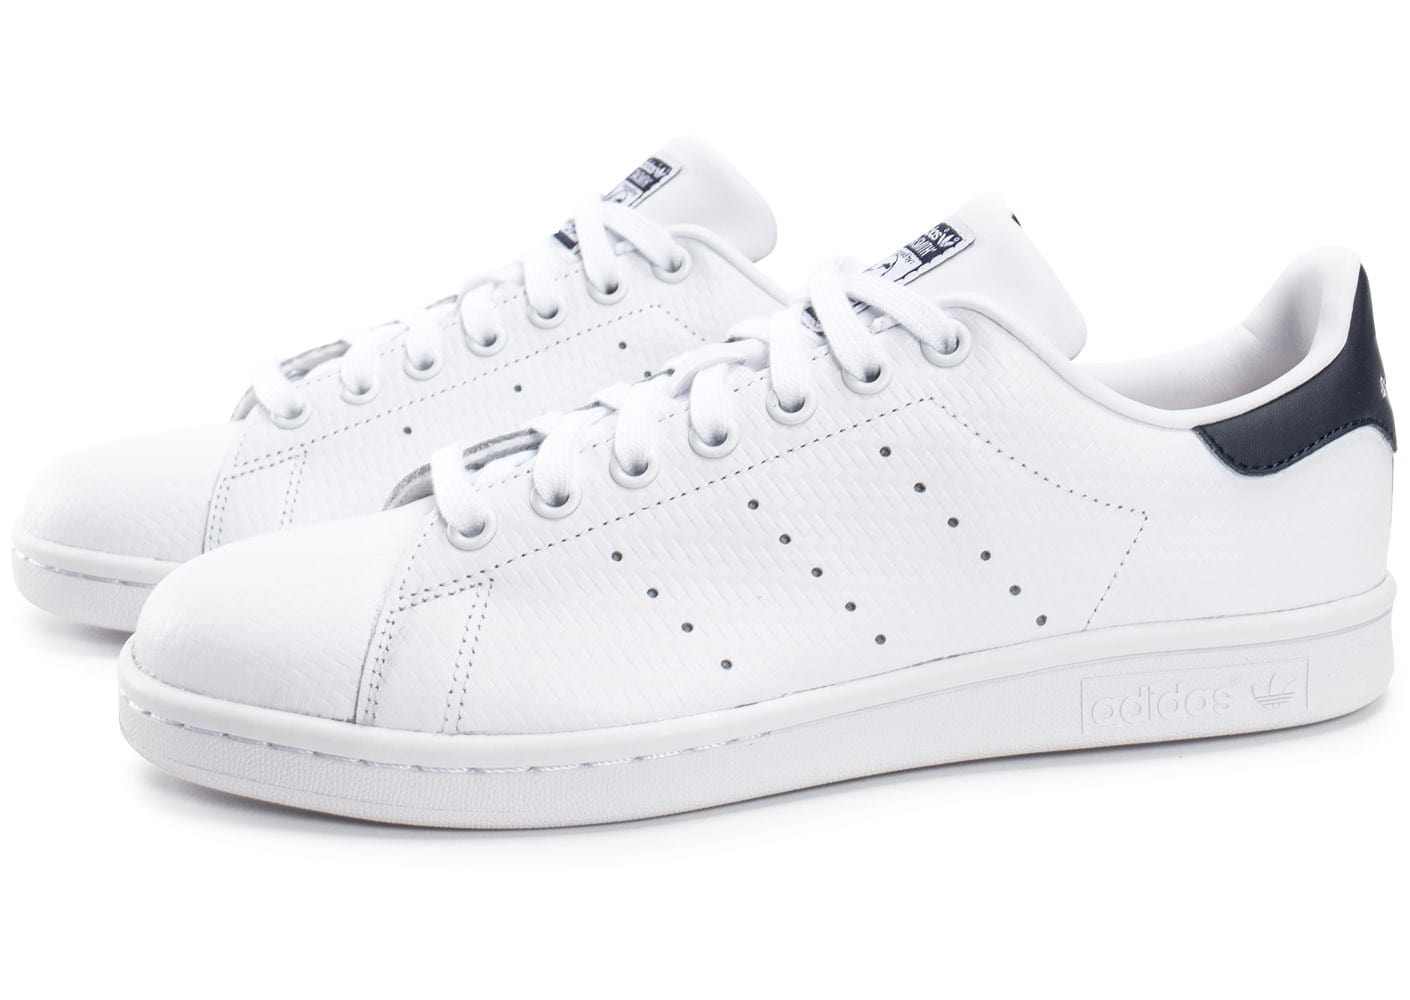 adidas Stan Smith Woven blanche et bleue - Chaussures ...